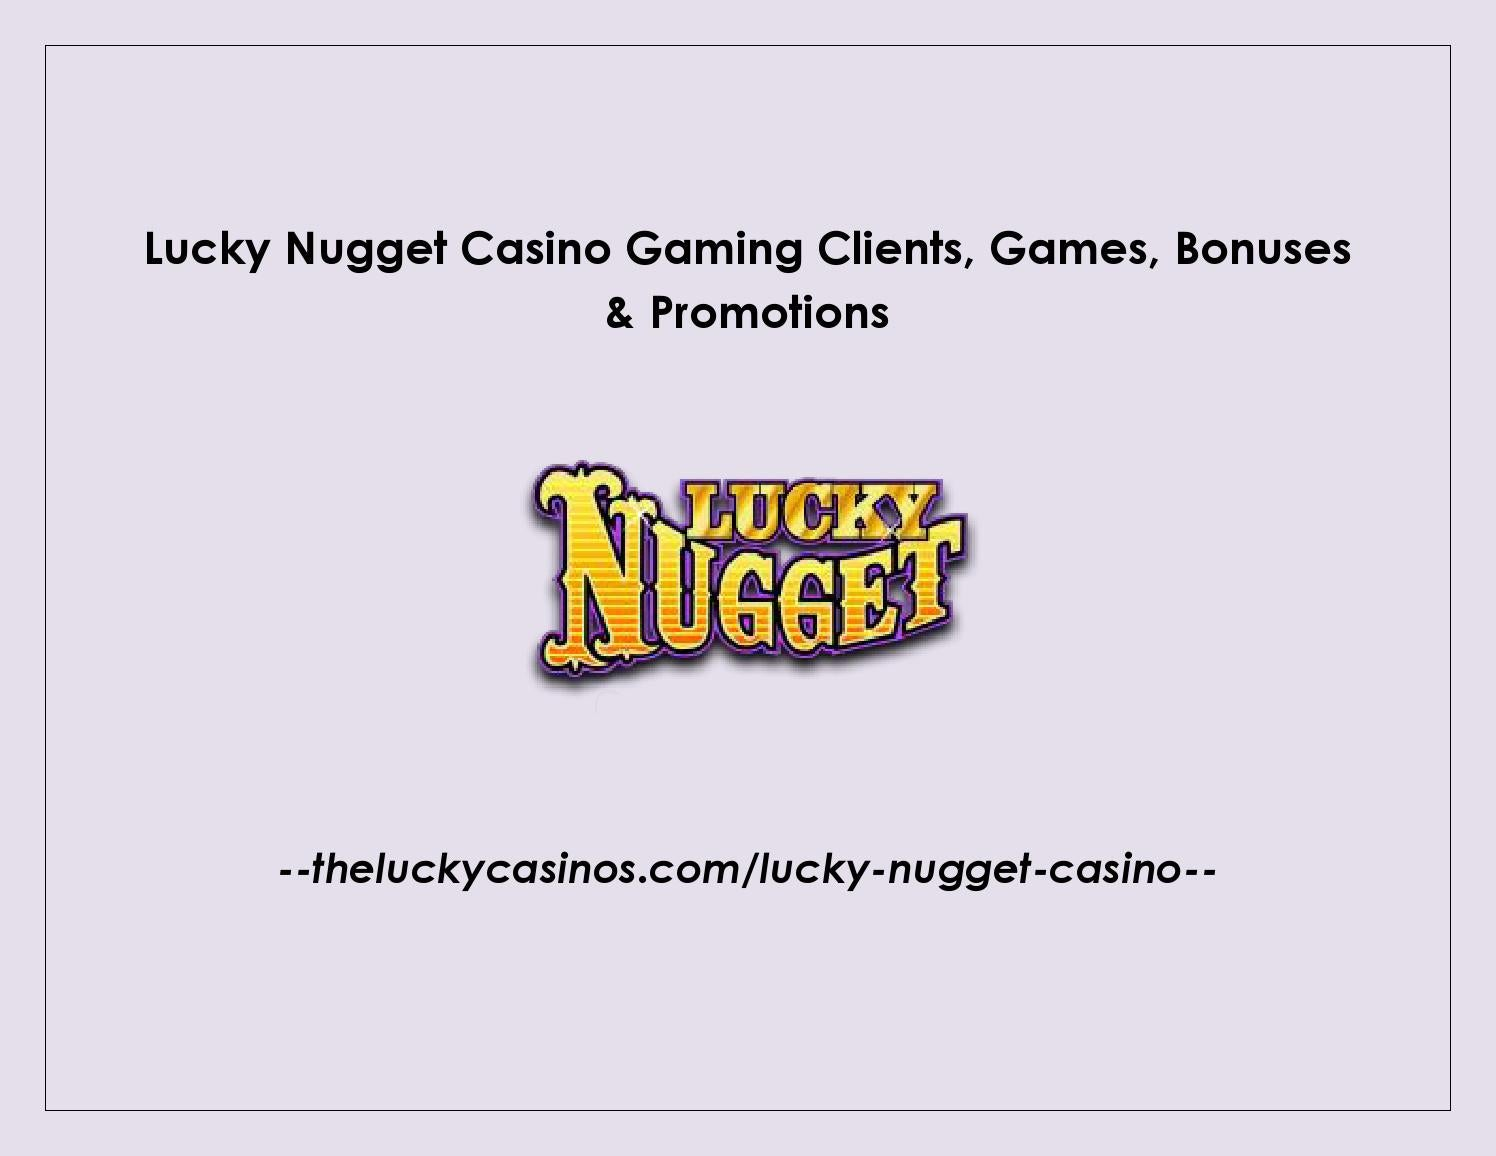 Lucky Nugget Casino Gaming Clients Games Bonuses Promotions By